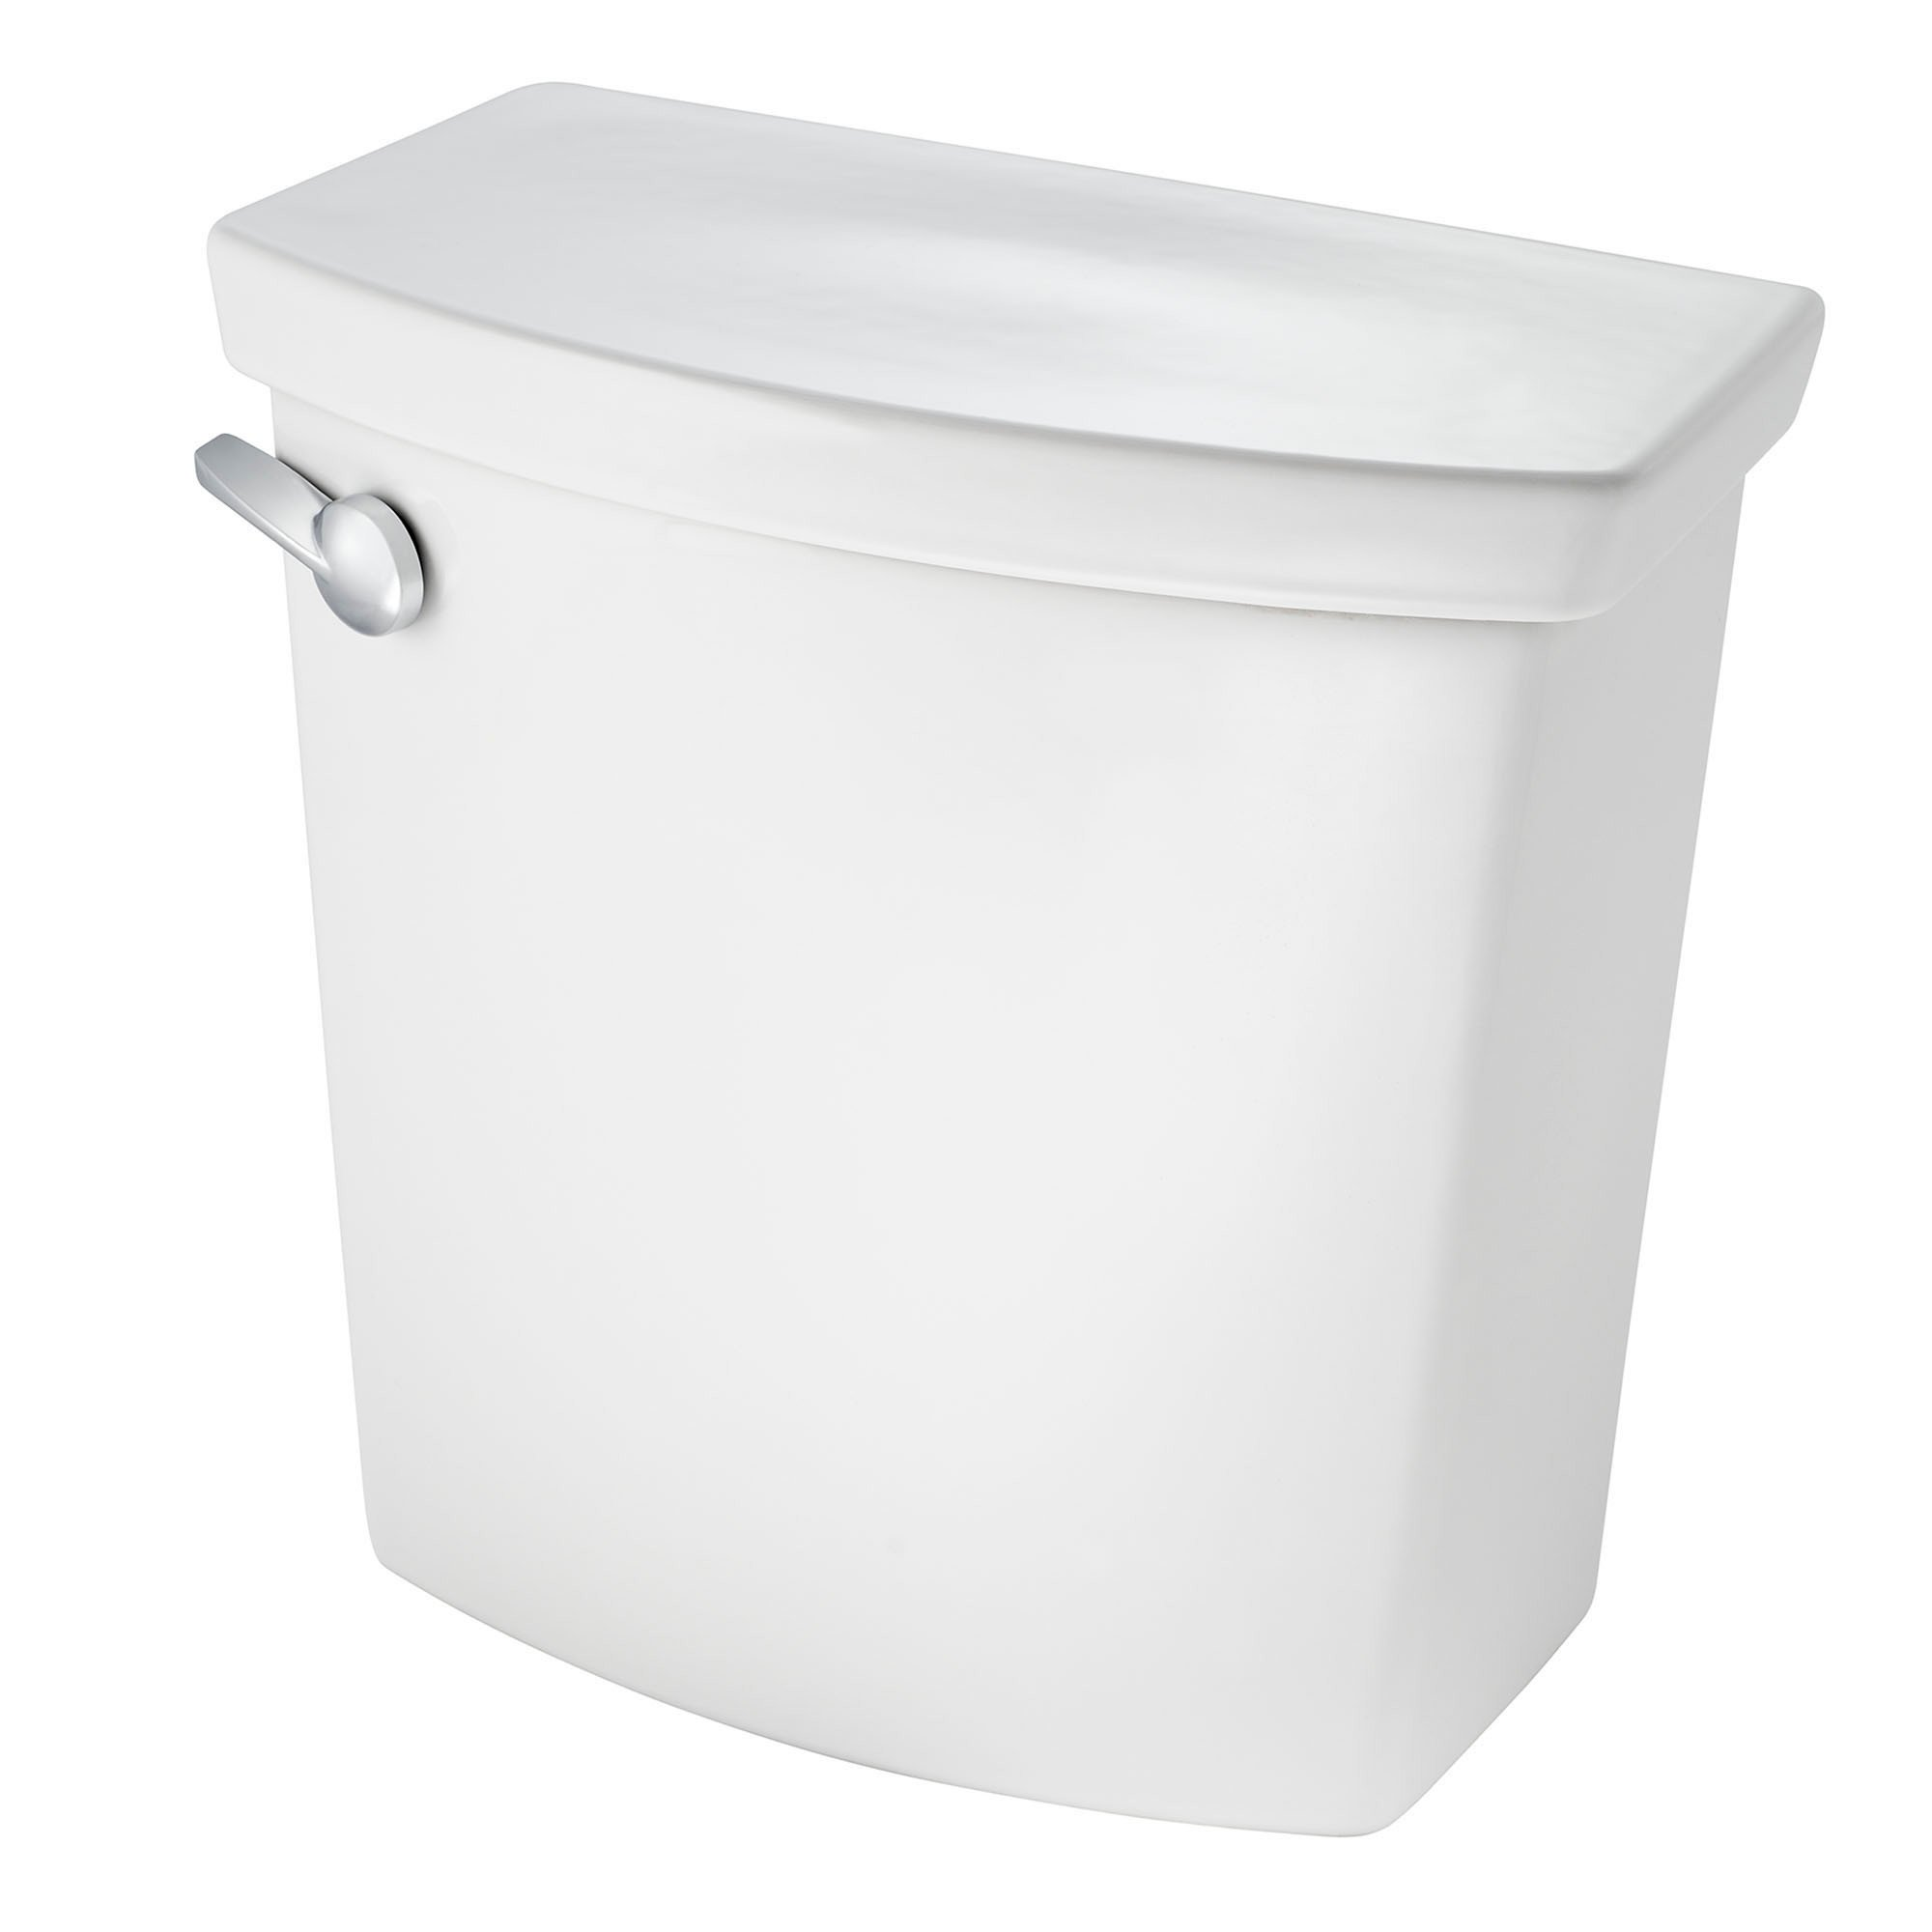 American Standard 4133A115.020 H20Ption/Other Dual Flush 12'' Rough-in Tank with Trip Lever on Right-Hand Side, White